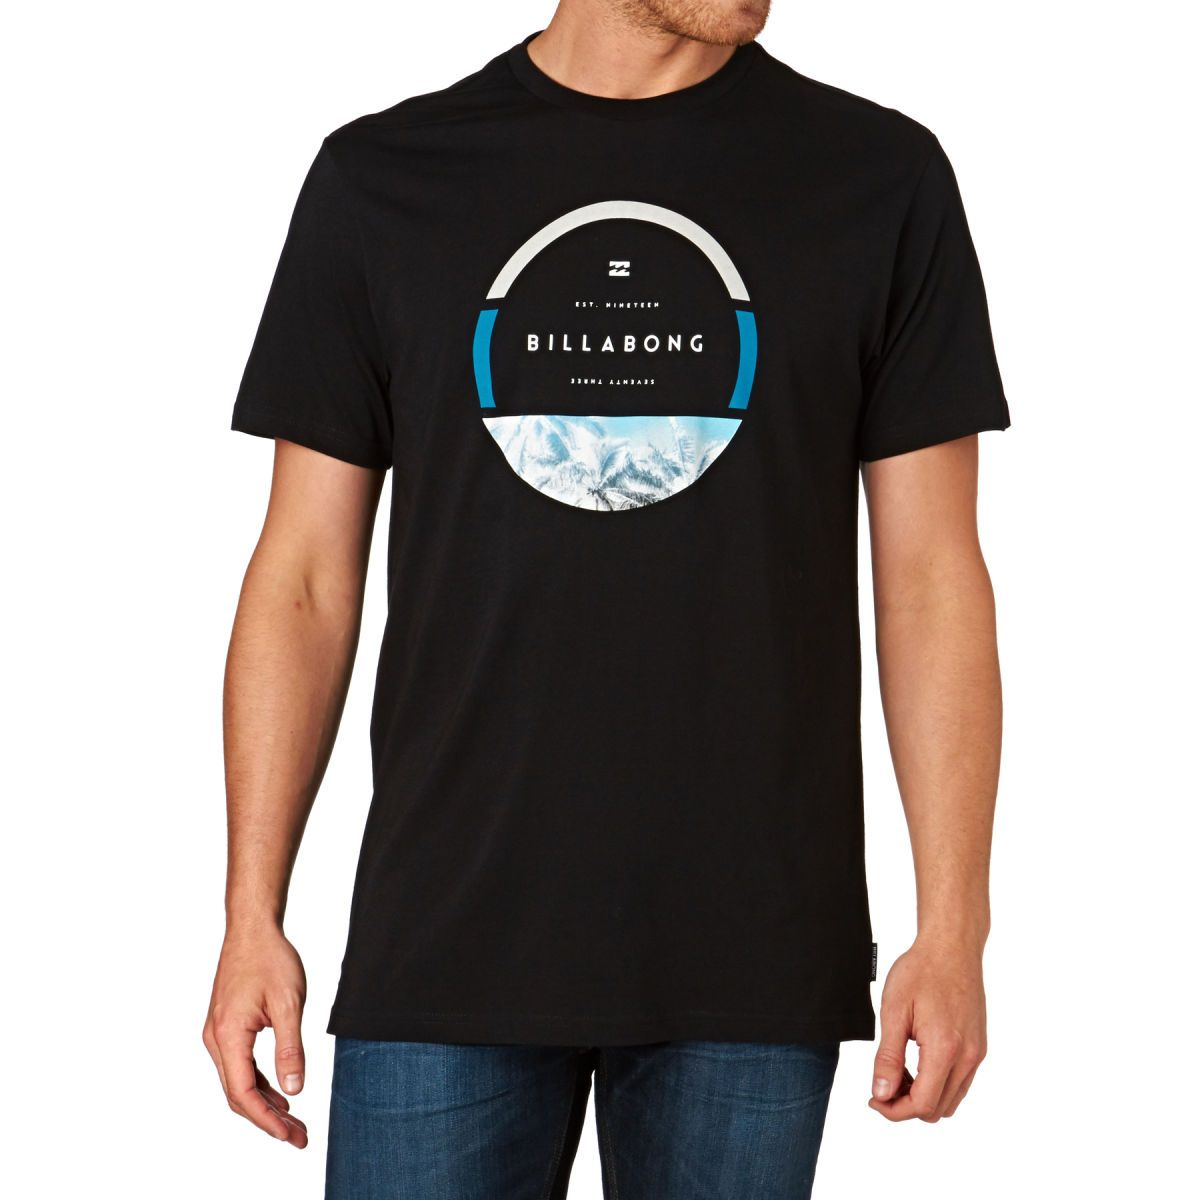 Billabong Tribong Circle T-Shirt - Black